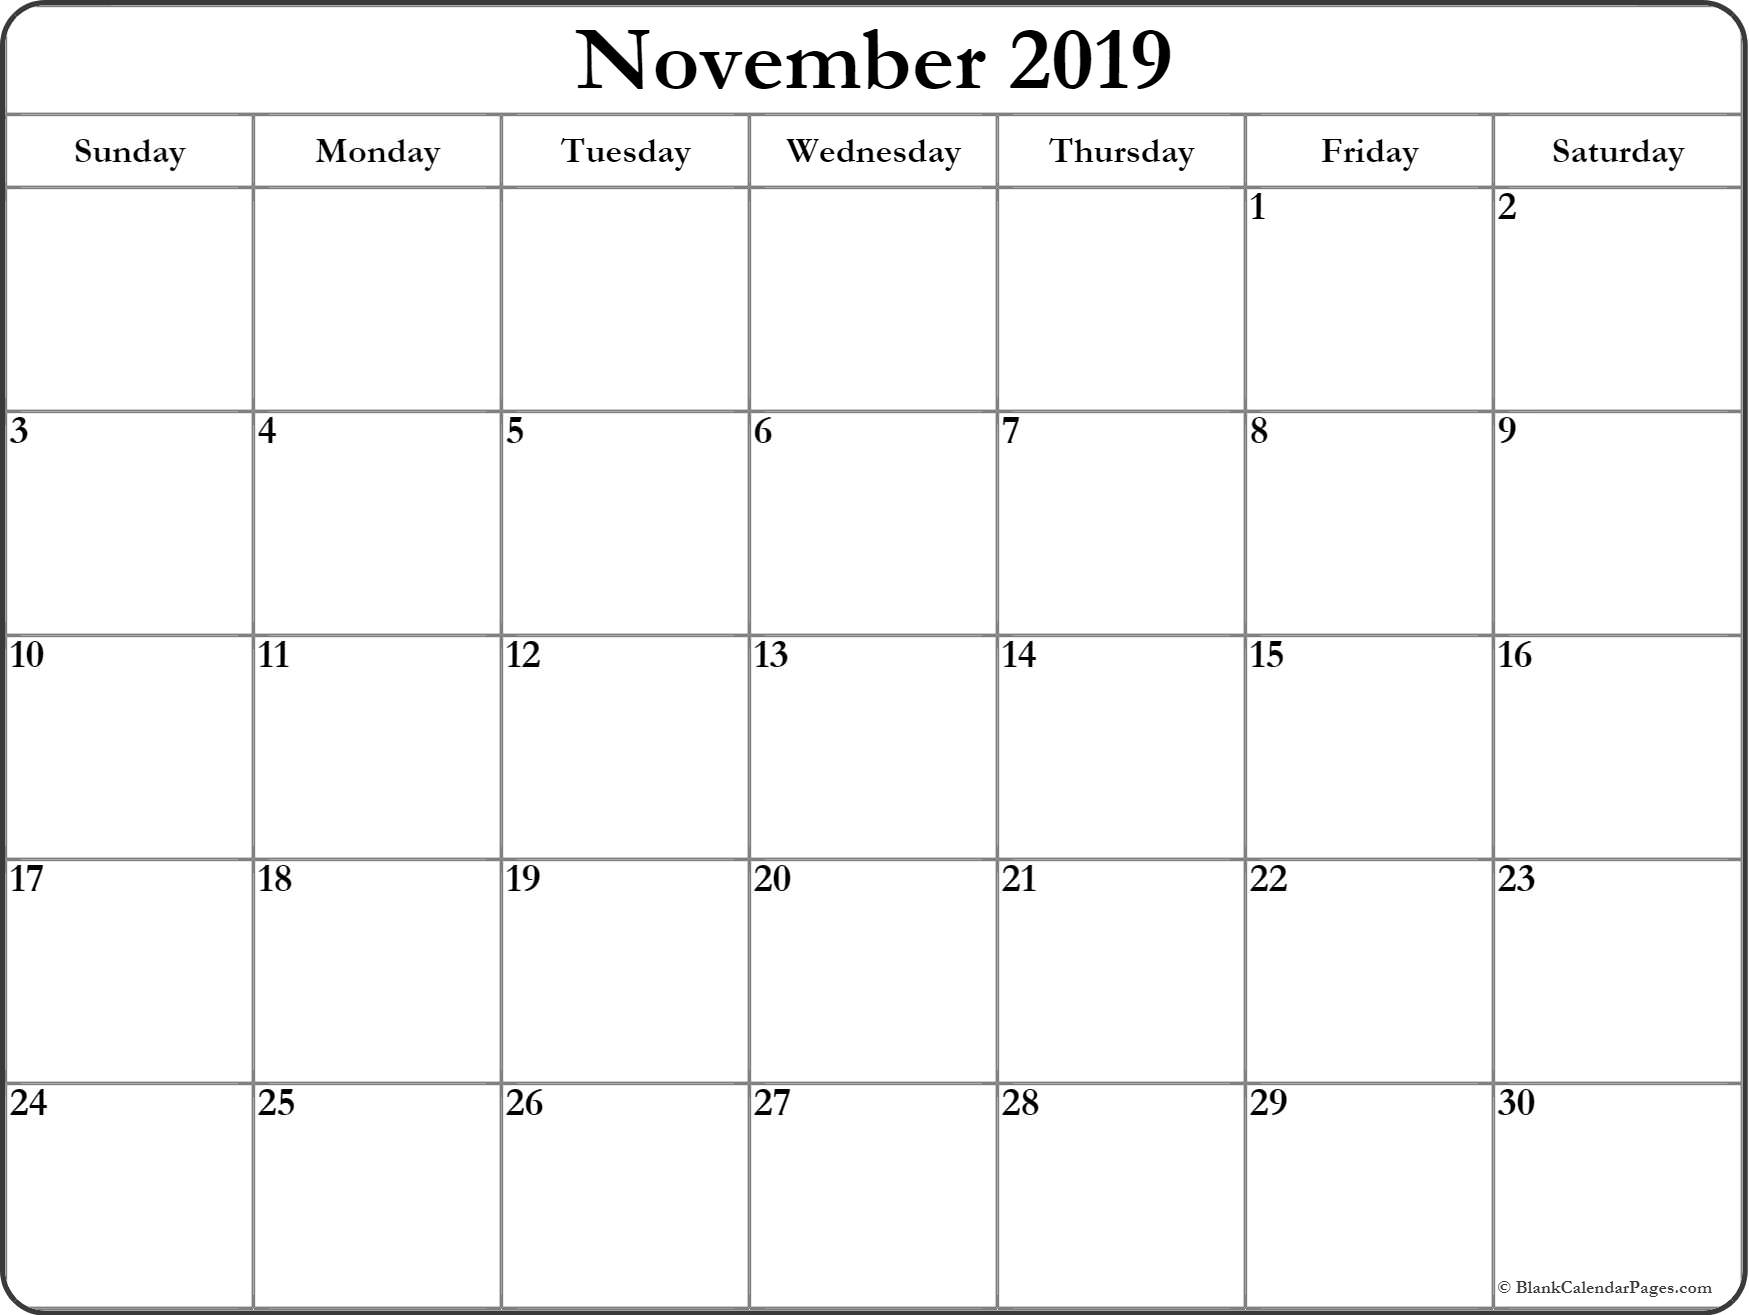 November 2019 Blank Calendar Template  Free Printable with regard to Calendar With Large Squares